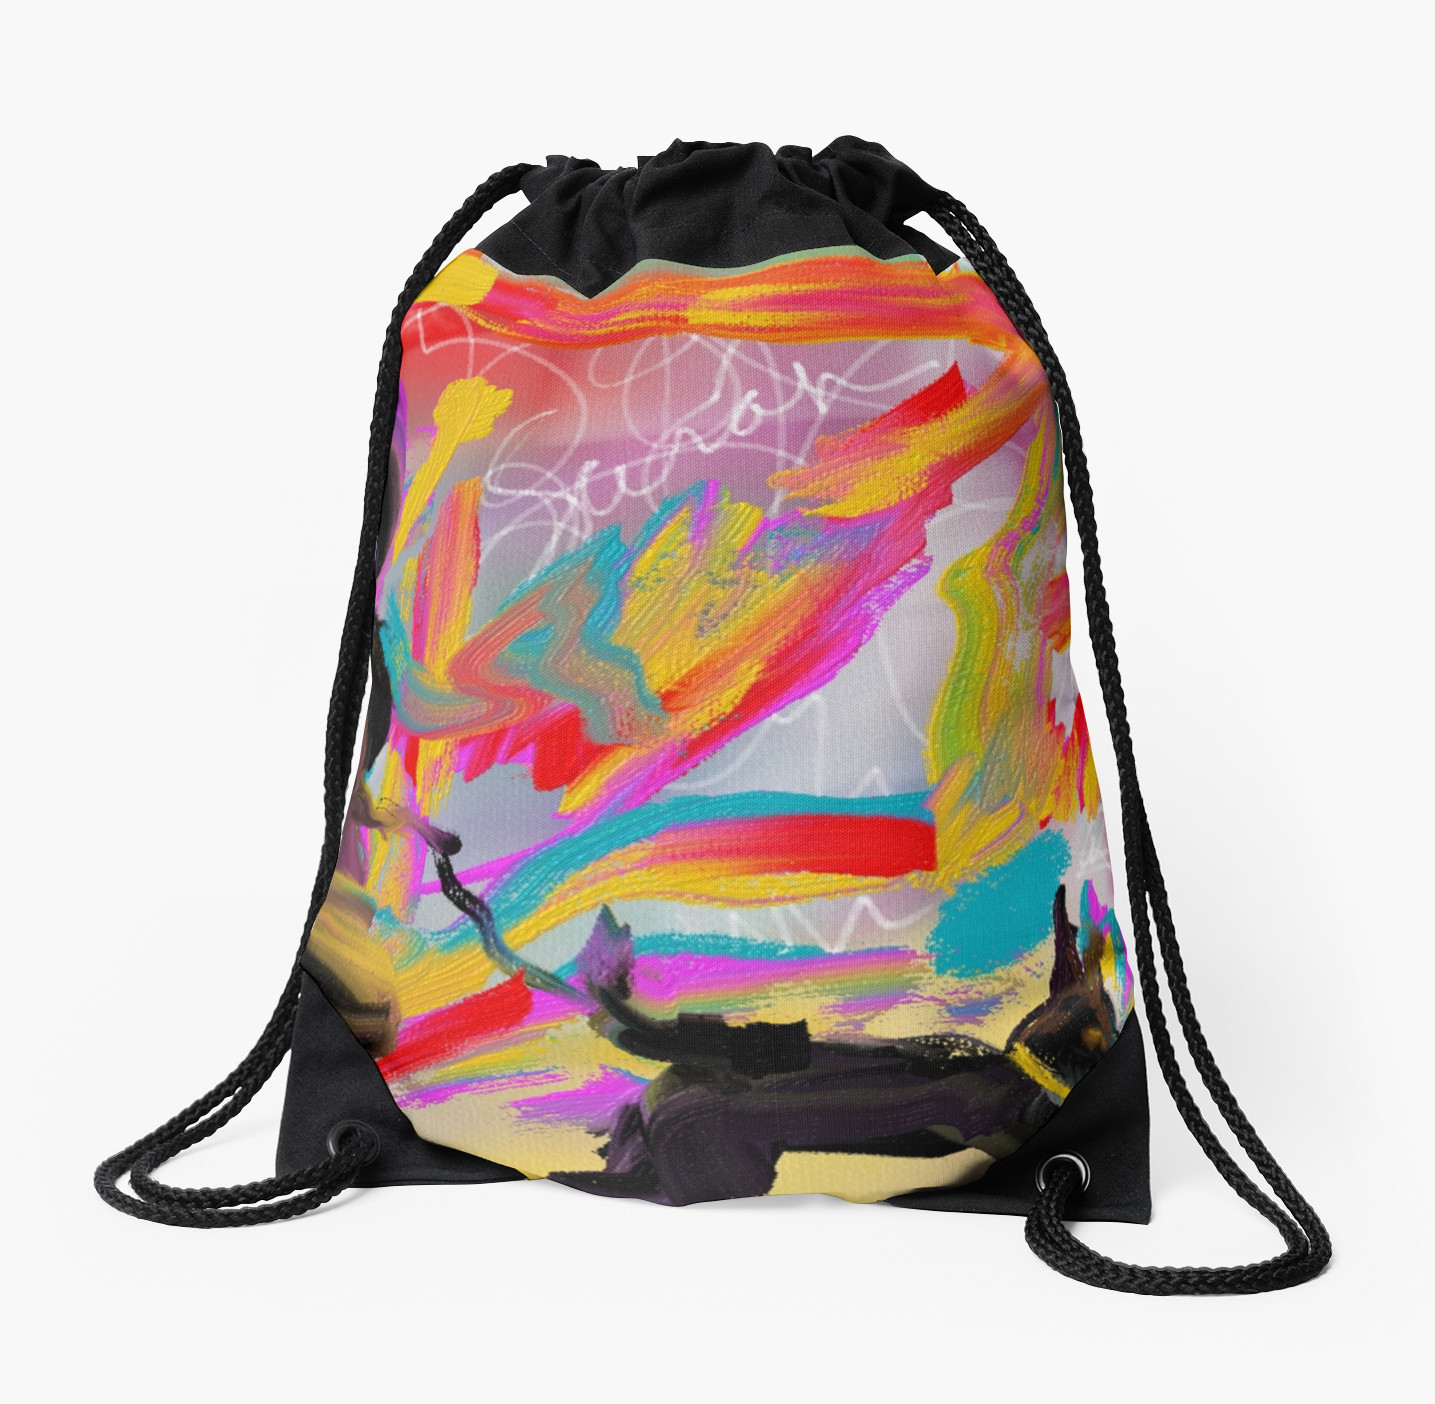 Walking the Dog drawstring bag